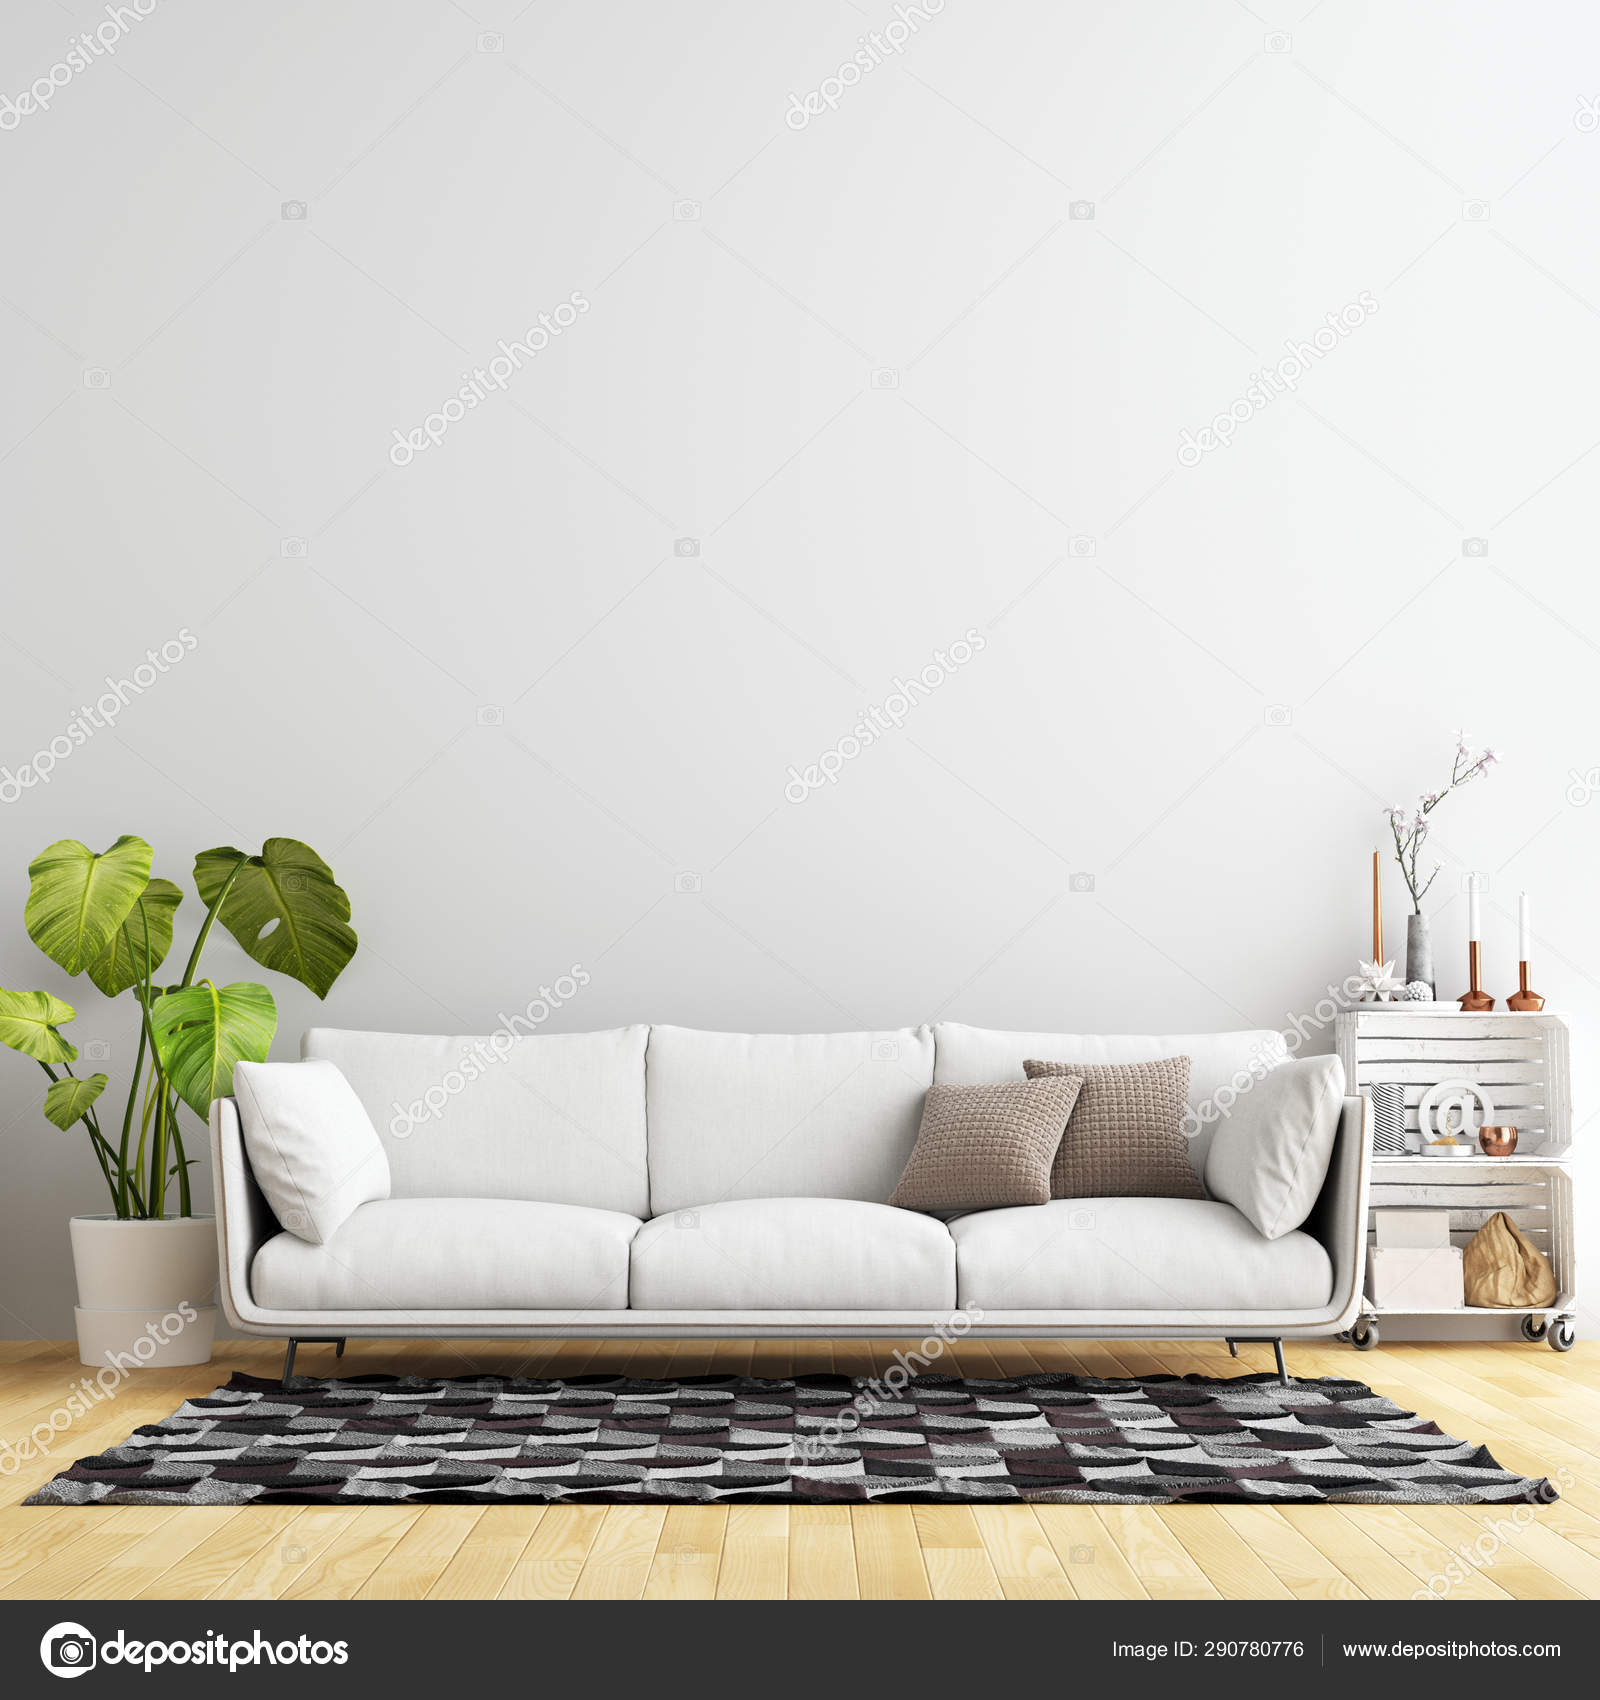 Interior Living Room Wall Background Mockup with Furniture and Decoration  12